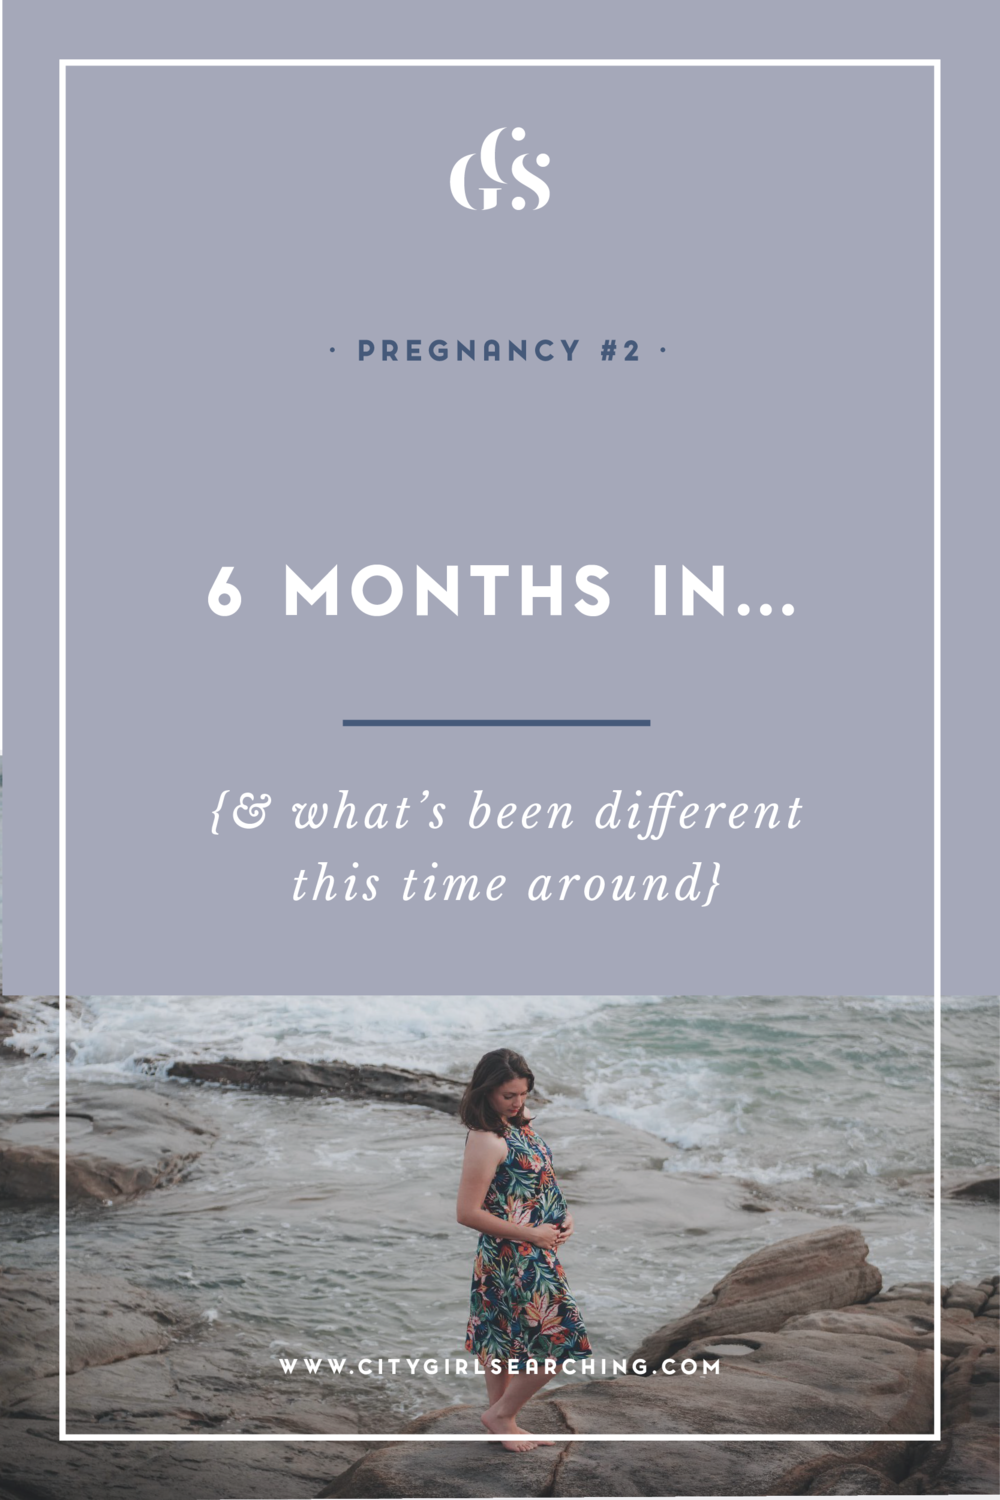 my second pregnancy 6 months in and what has been different this time around-01.png